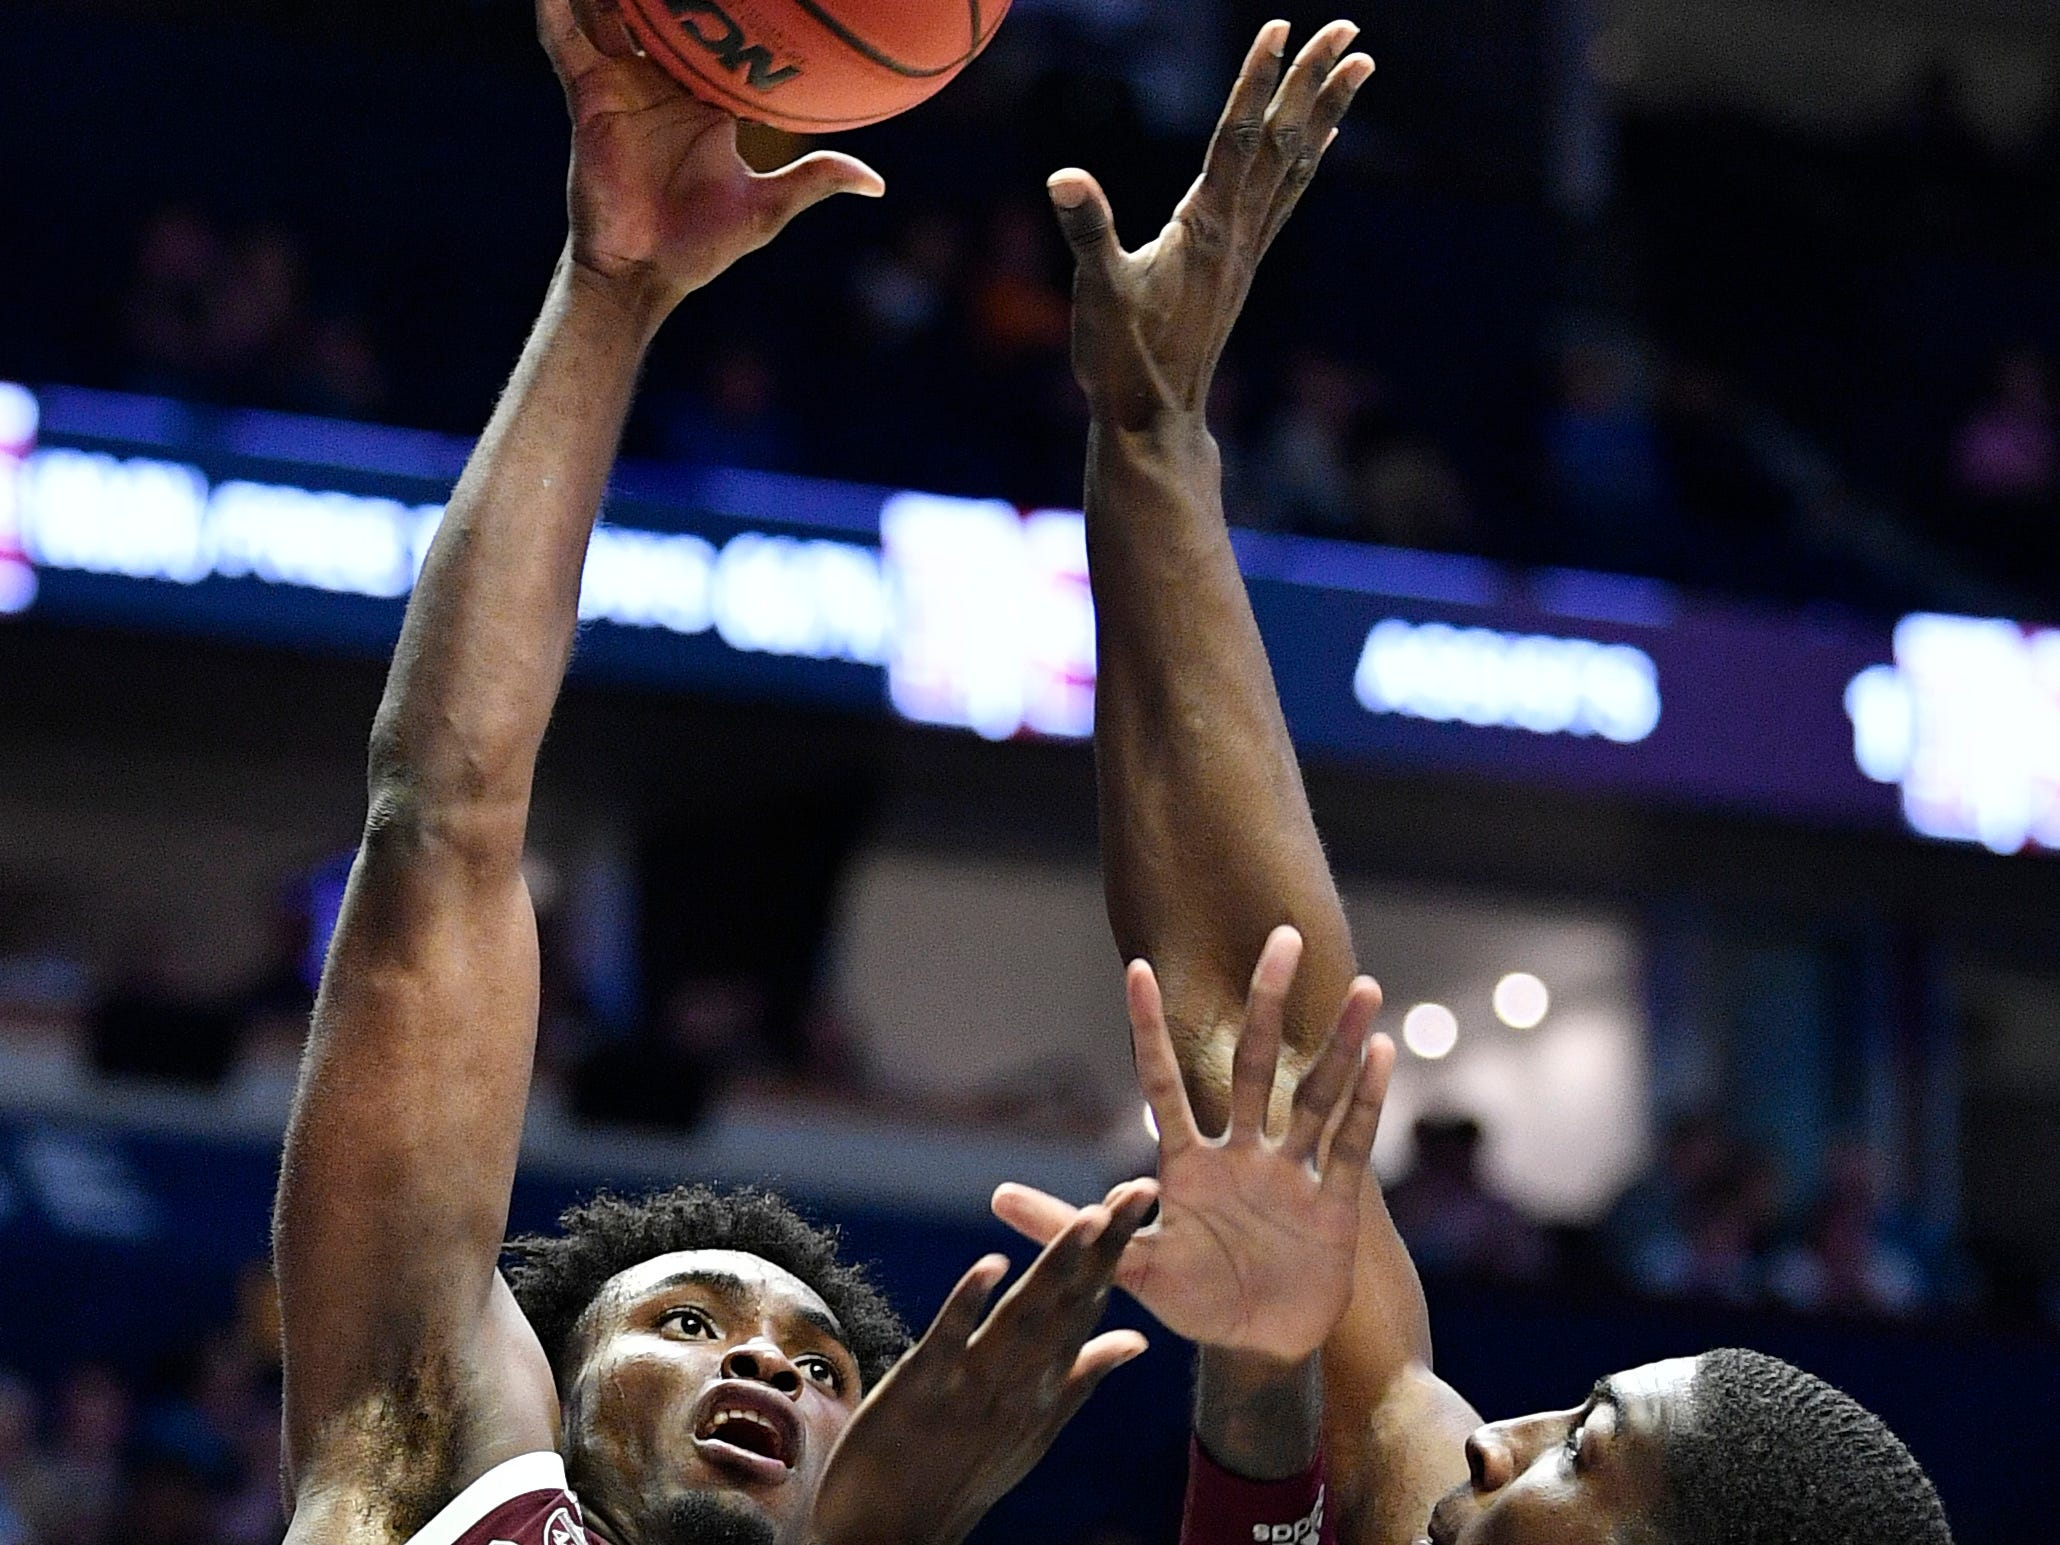 Texas A&M forward Christian Mekowulu (21) shoots defended by Mississippi State forward Reggie Perry (1) during the first half of the SEC Men's Basketball Tournament game at Bridgestone Arena in Nashville, Tenn., Thursday, March 14, 2019.